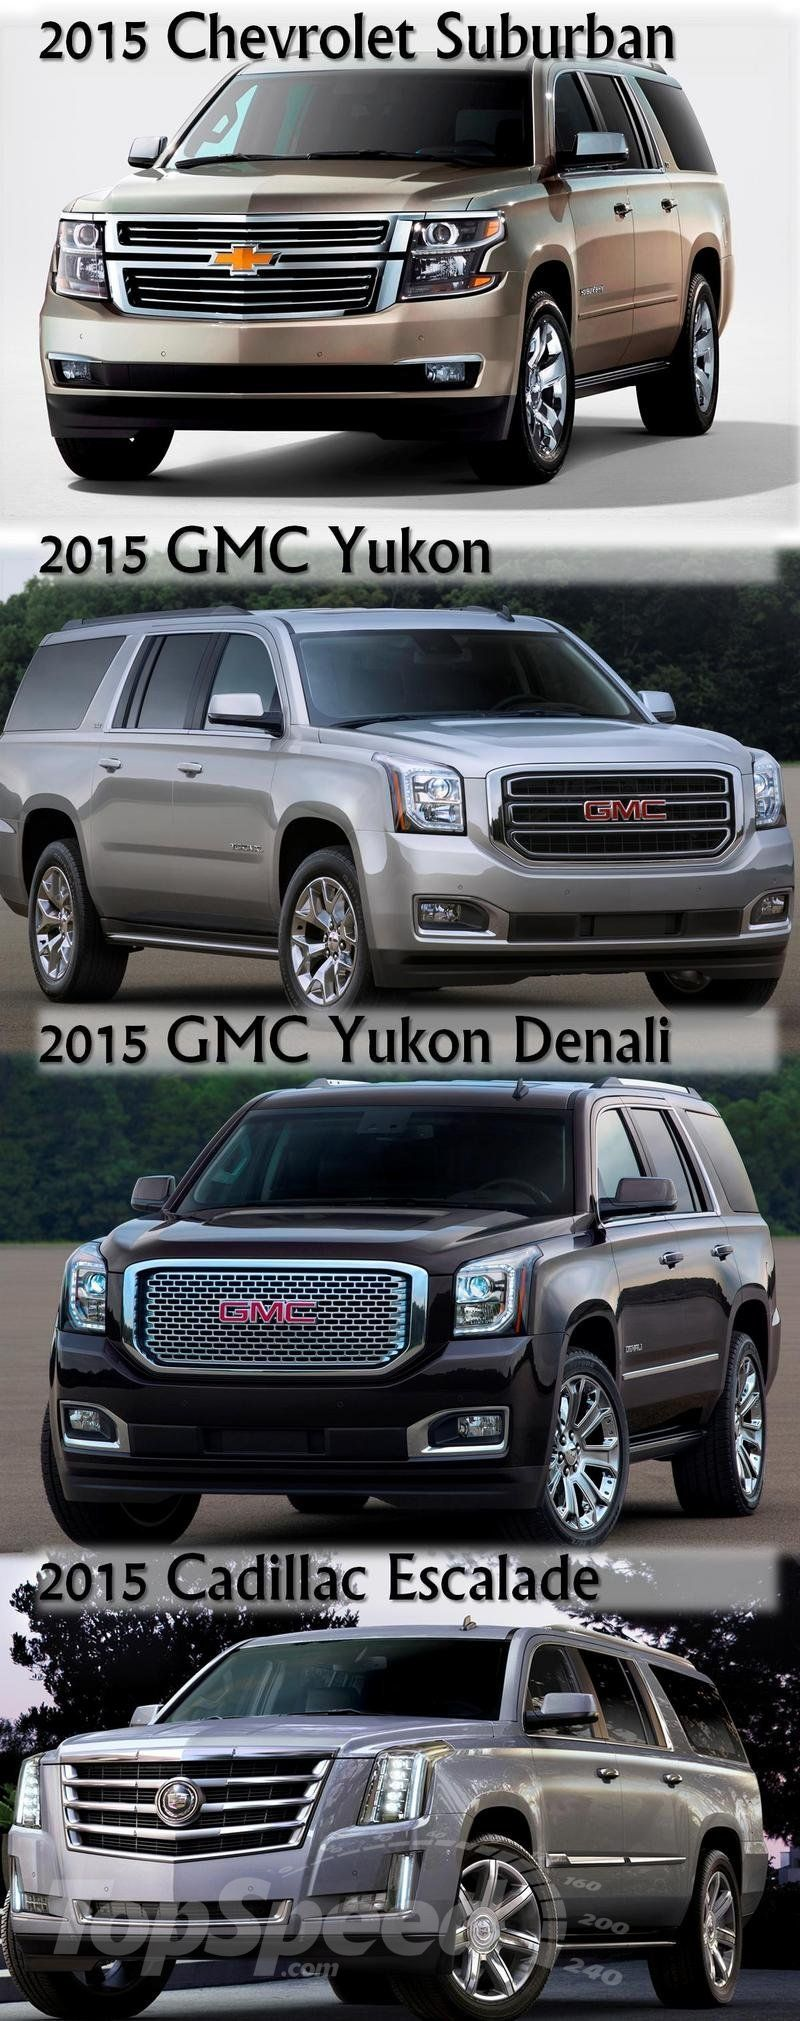 2015 Gmc Yukon Xl Vs Suburban Vs Denali Vs Escalade Gmc Yukon Xl